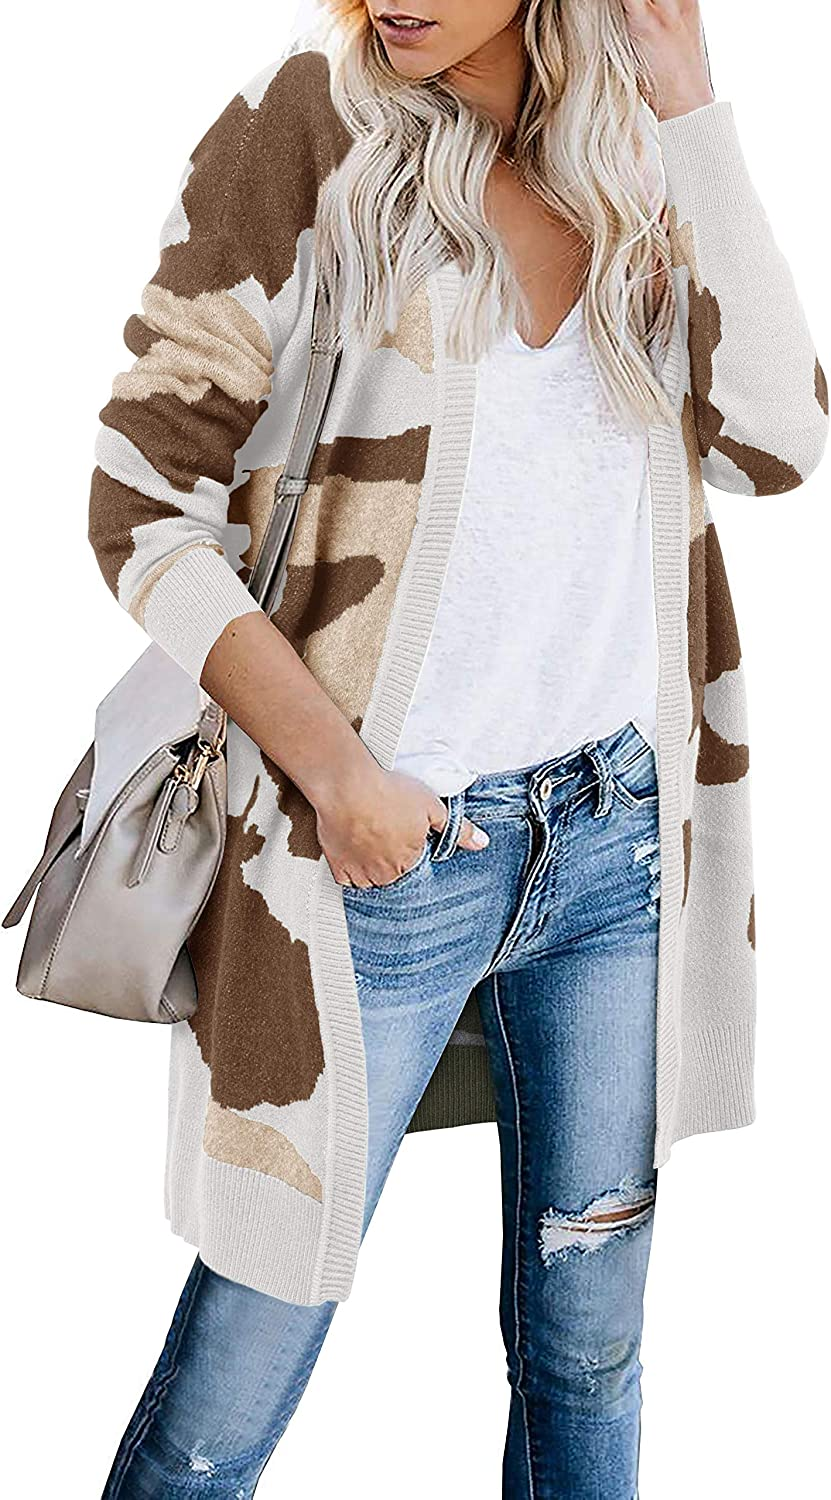 Tutorutor Womens Open Front Camo Sweaters High quality new Long Max 57% OFF Cardigan Oversize